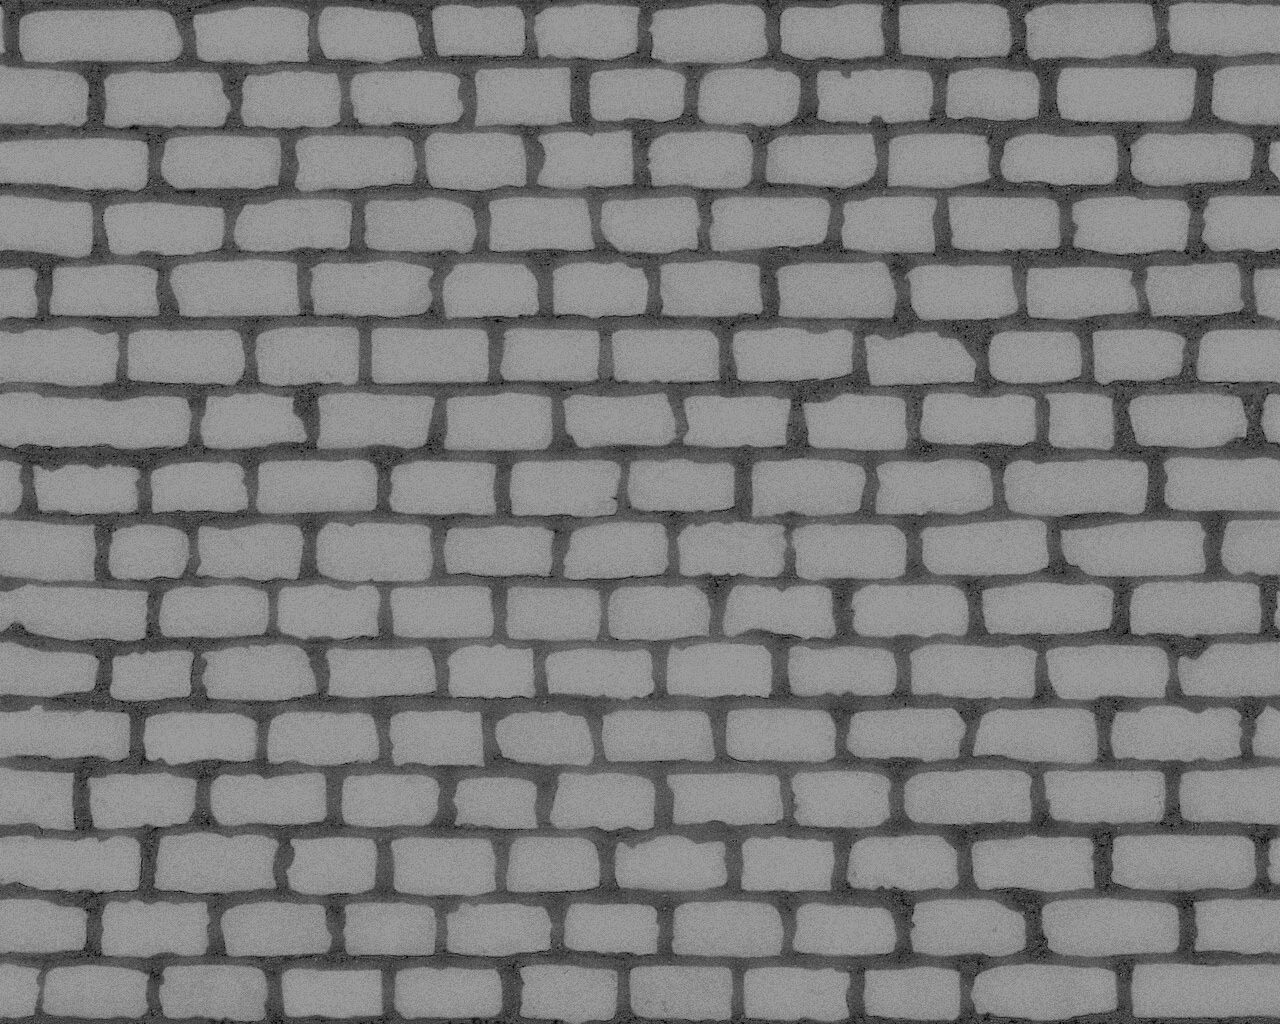 Stone Wall clipart brick wall background Grey PSD  JPG 35+